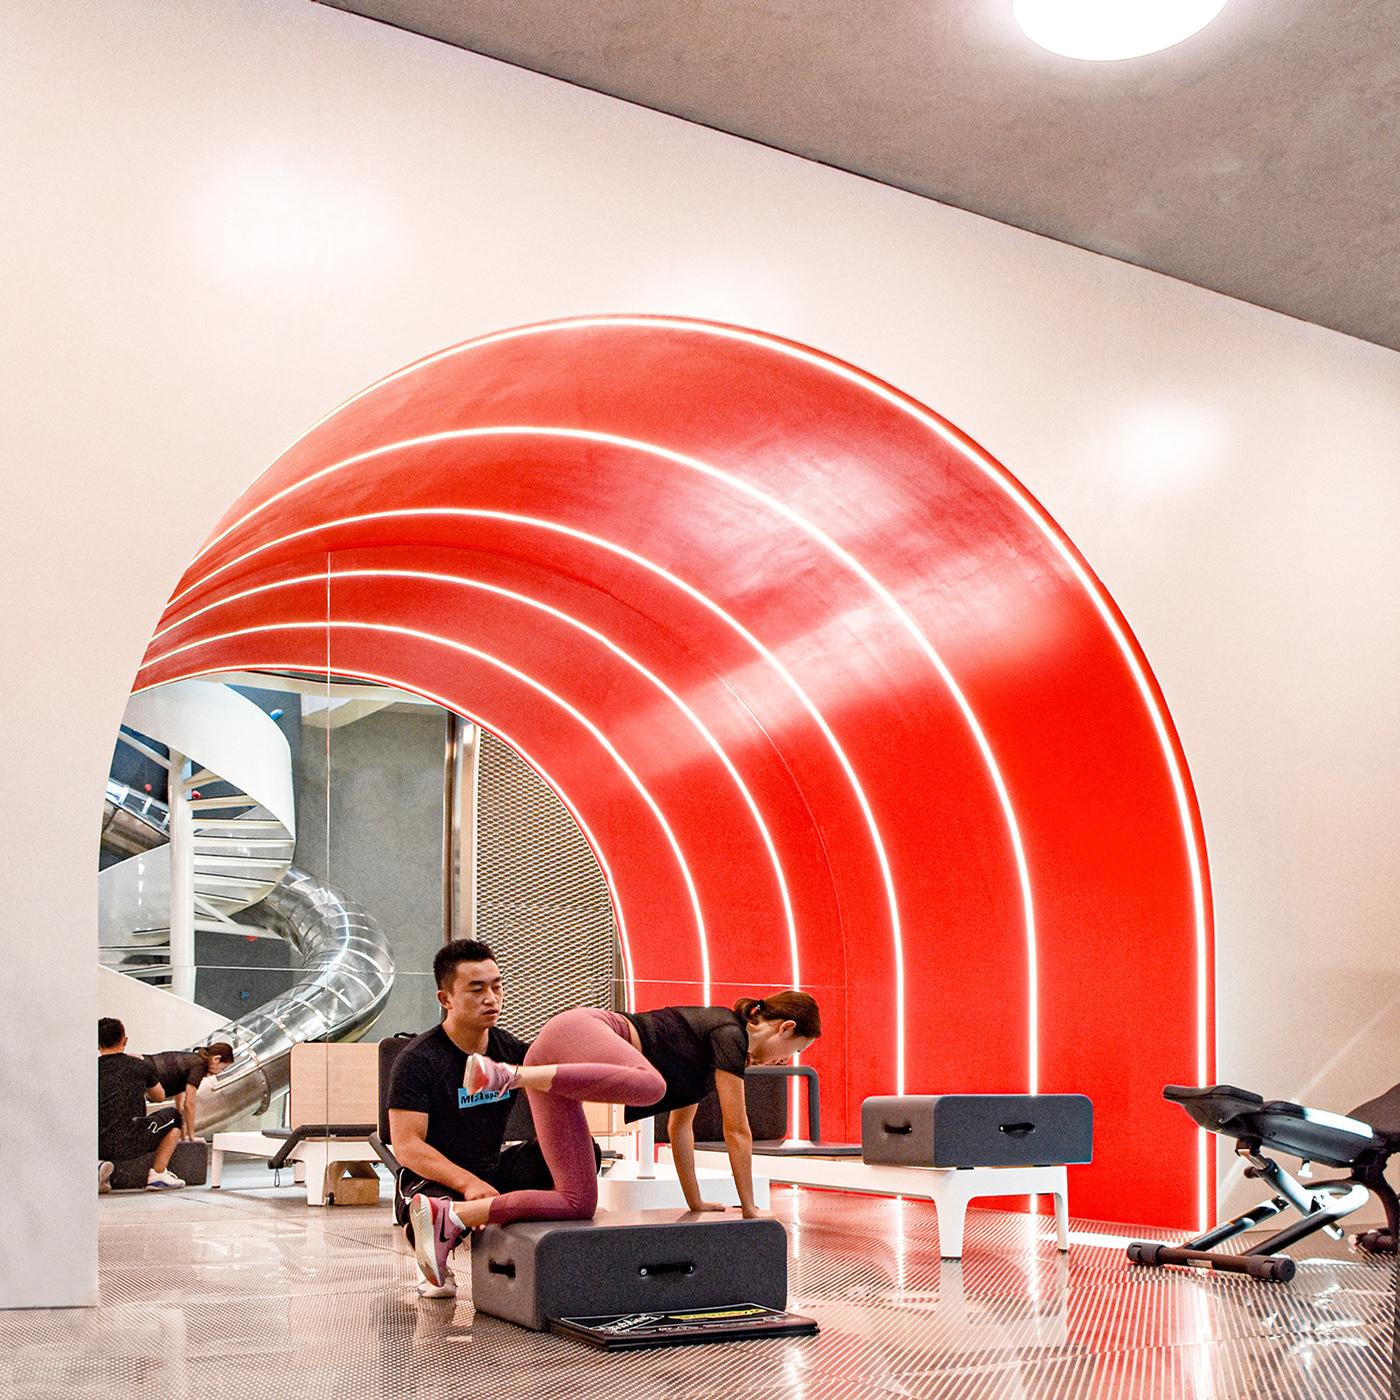 A red arch with embedded light-strips connects two spaces within the gym